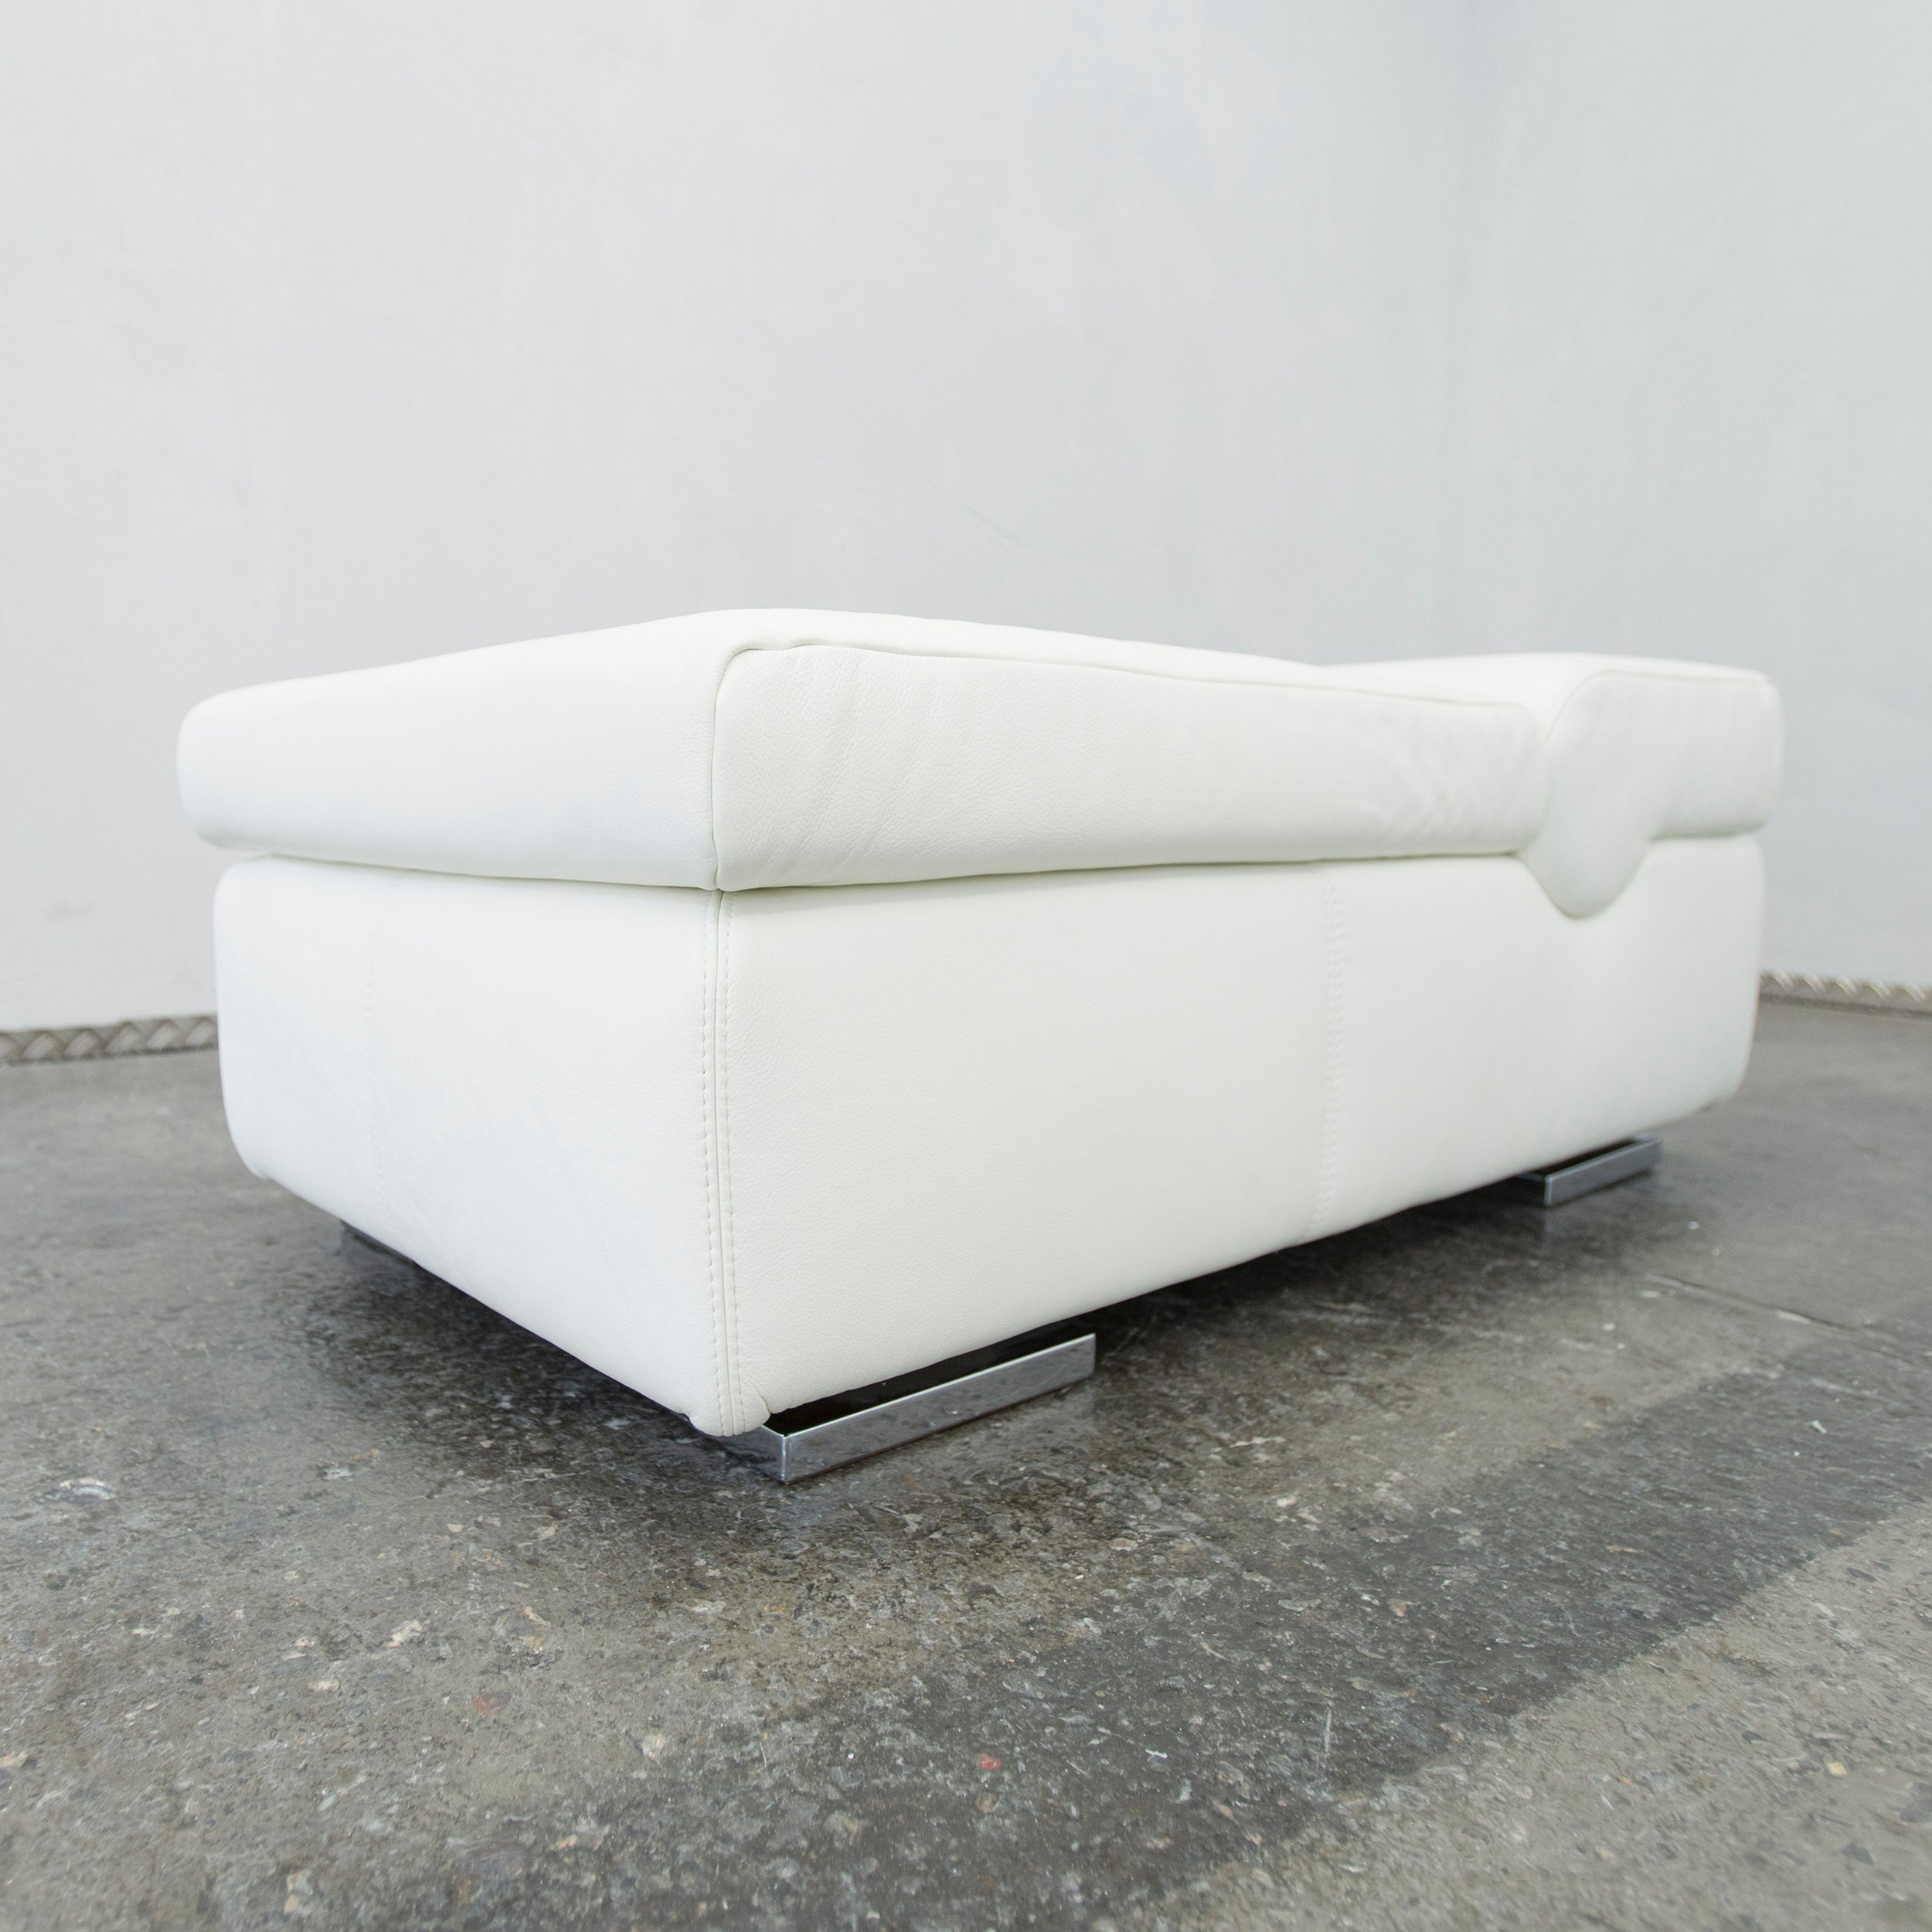 Einsitzer Sofa Musterring Designer Leather Footstool White Sofa Couch Pouff One Seat Modern